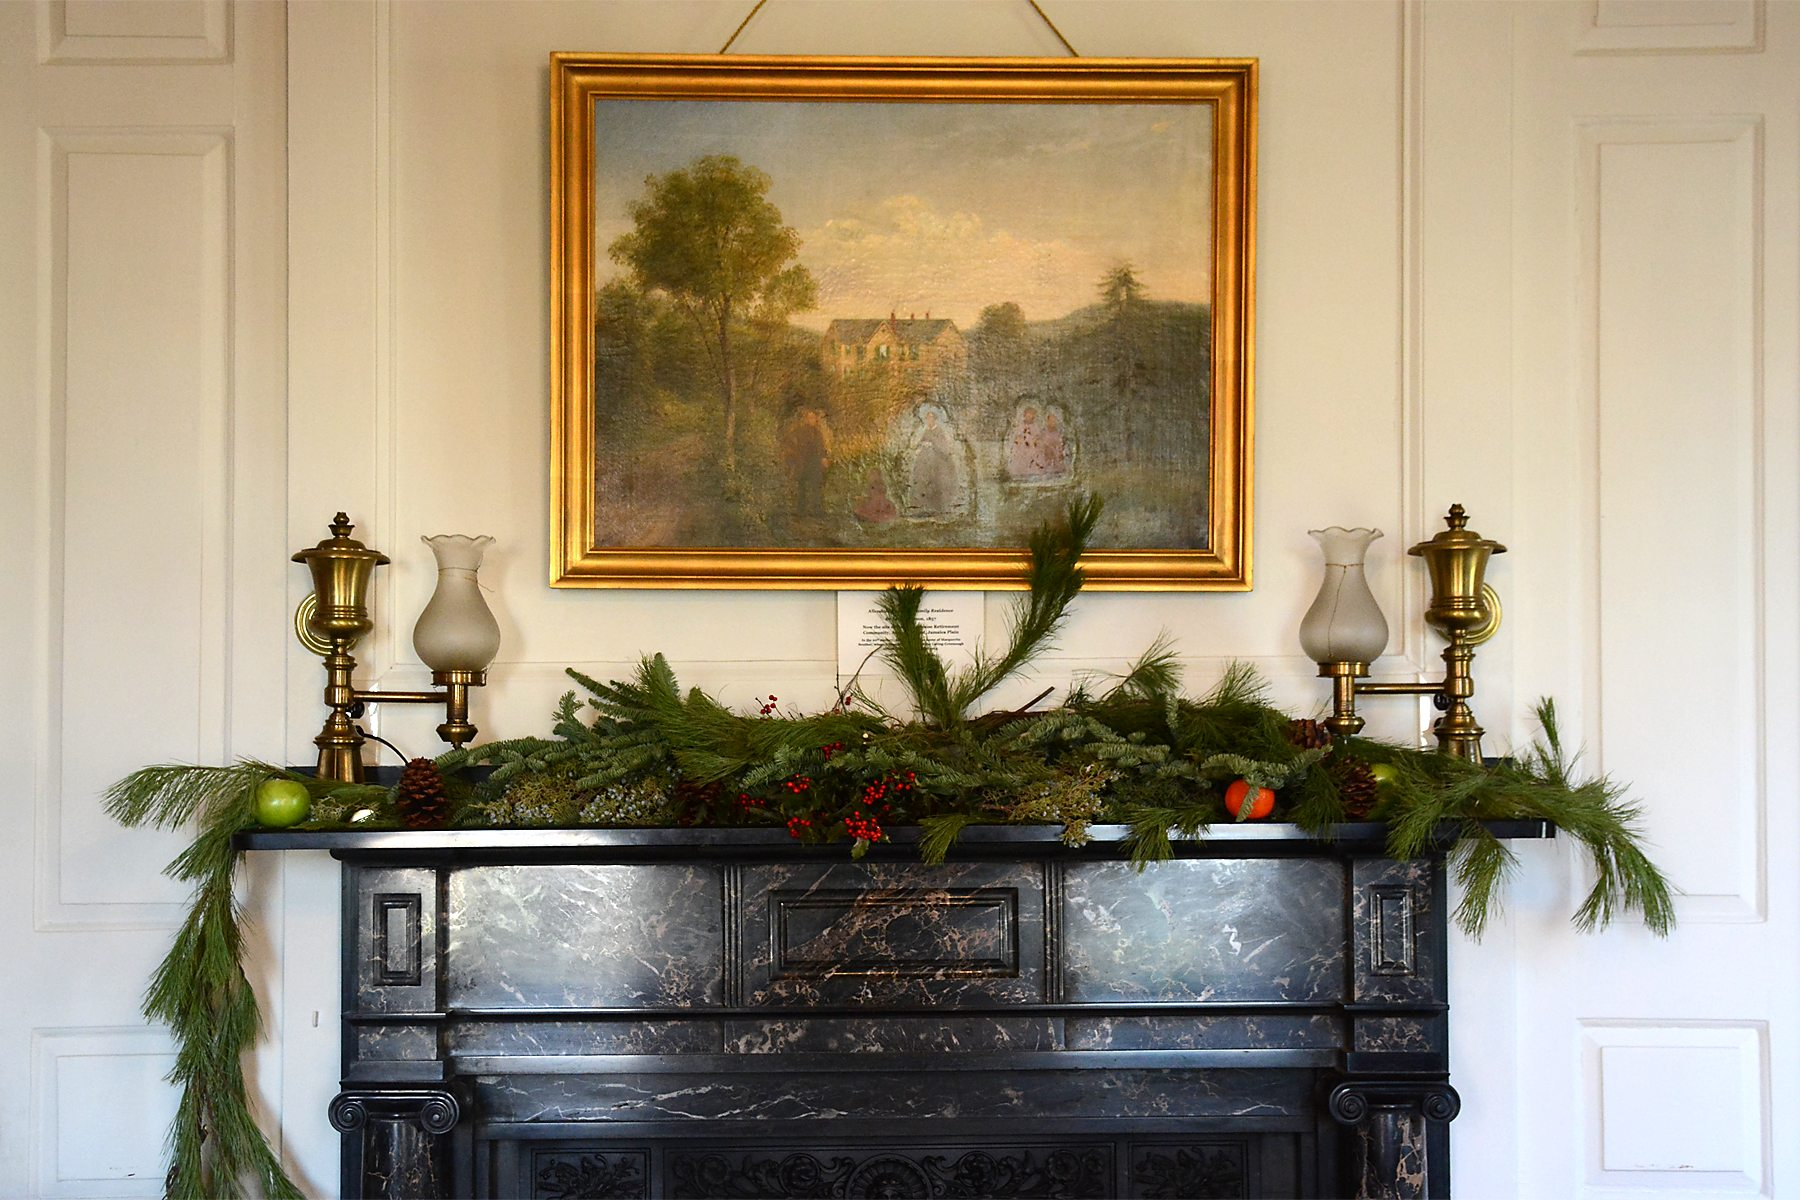 Festive Holiday Programming at the Loring Greenough House